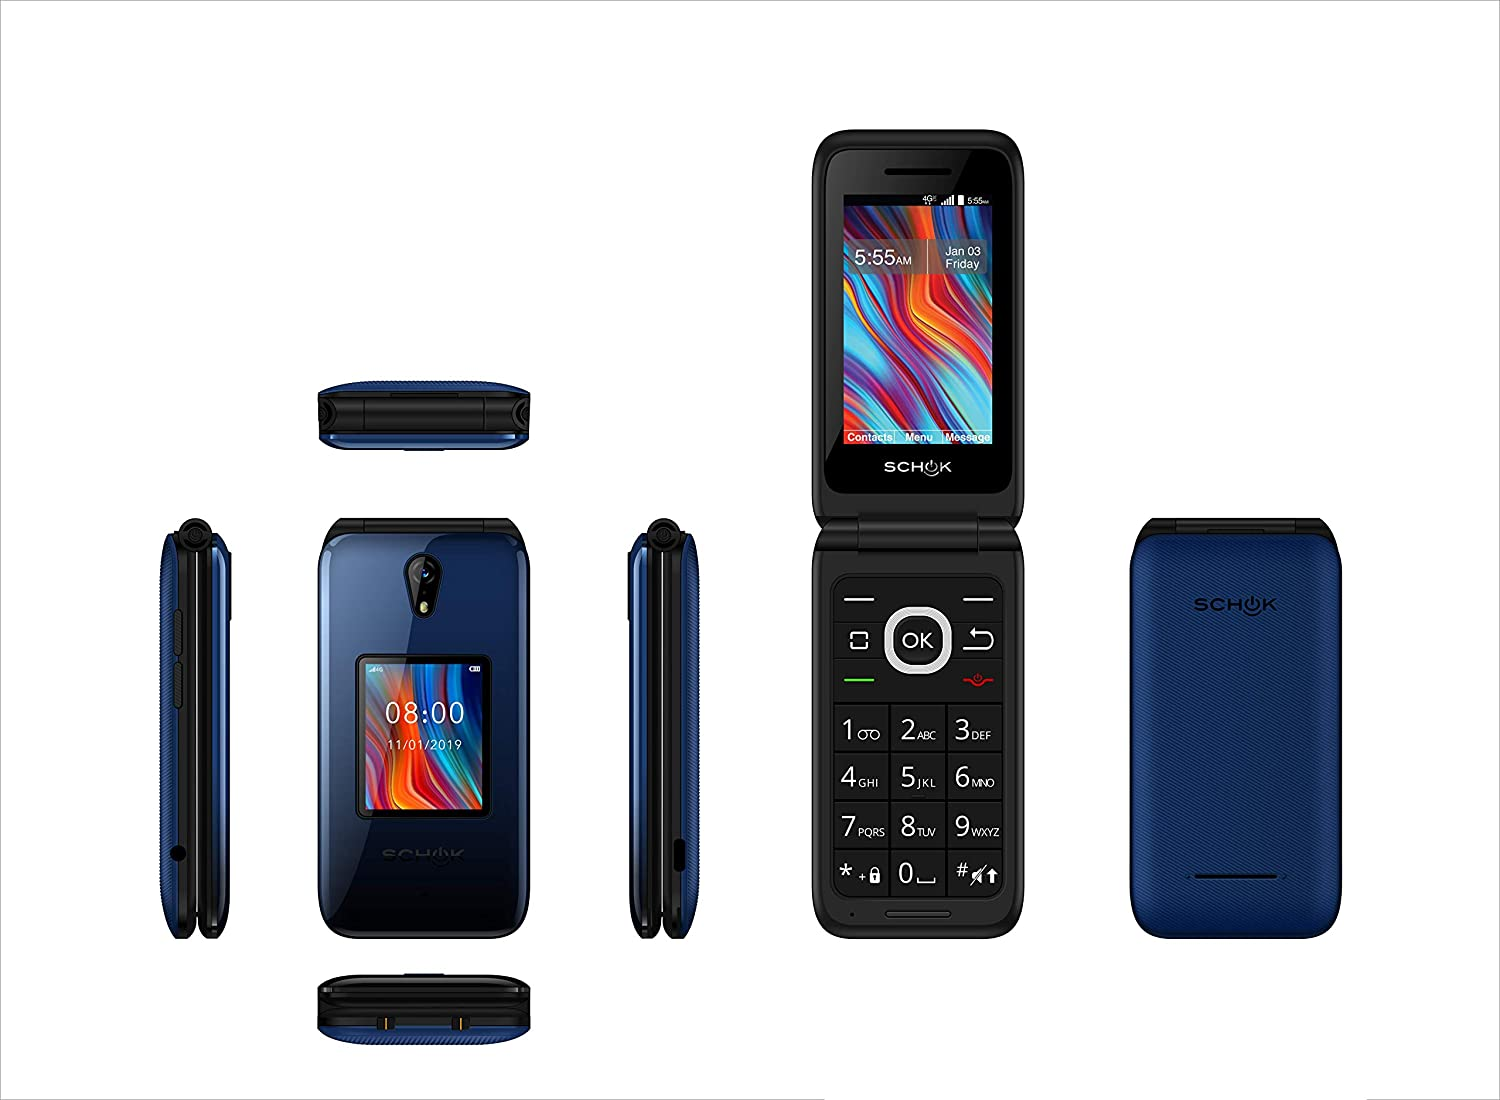 Schok Classic Flip Phone - Unlocked for All GSM Worldwide, Number Pad, All-Day Battery, and Exchangeable Colors; Black, Blue, Red